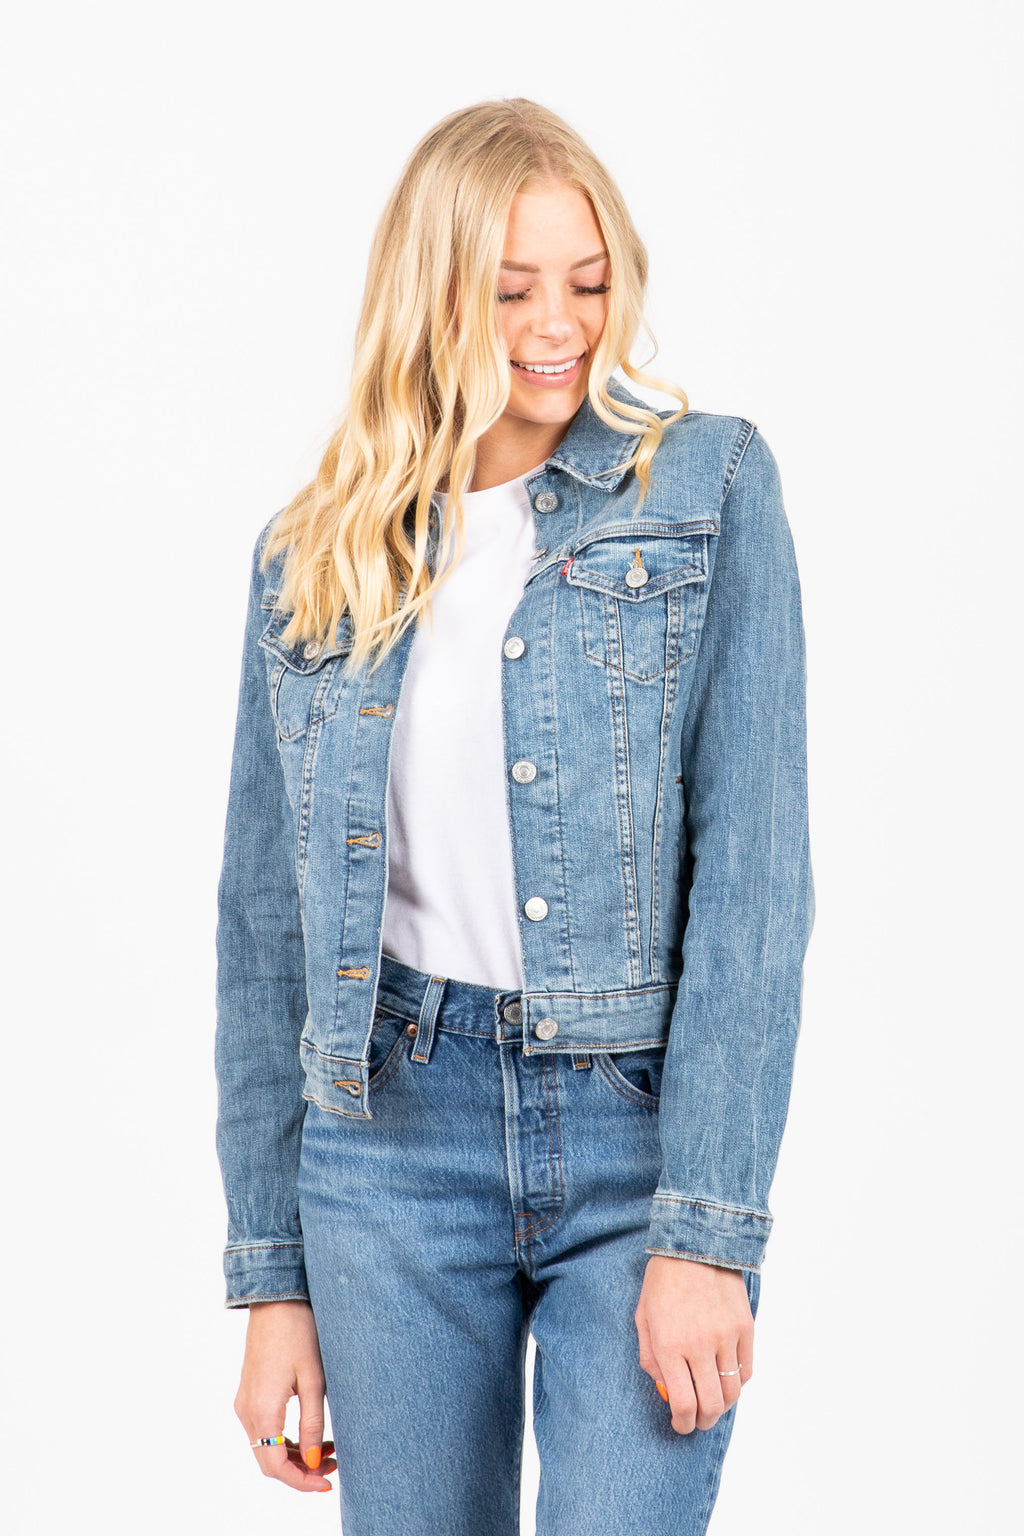 Levi's: Original Trucker Denim Jacket in Chronicles